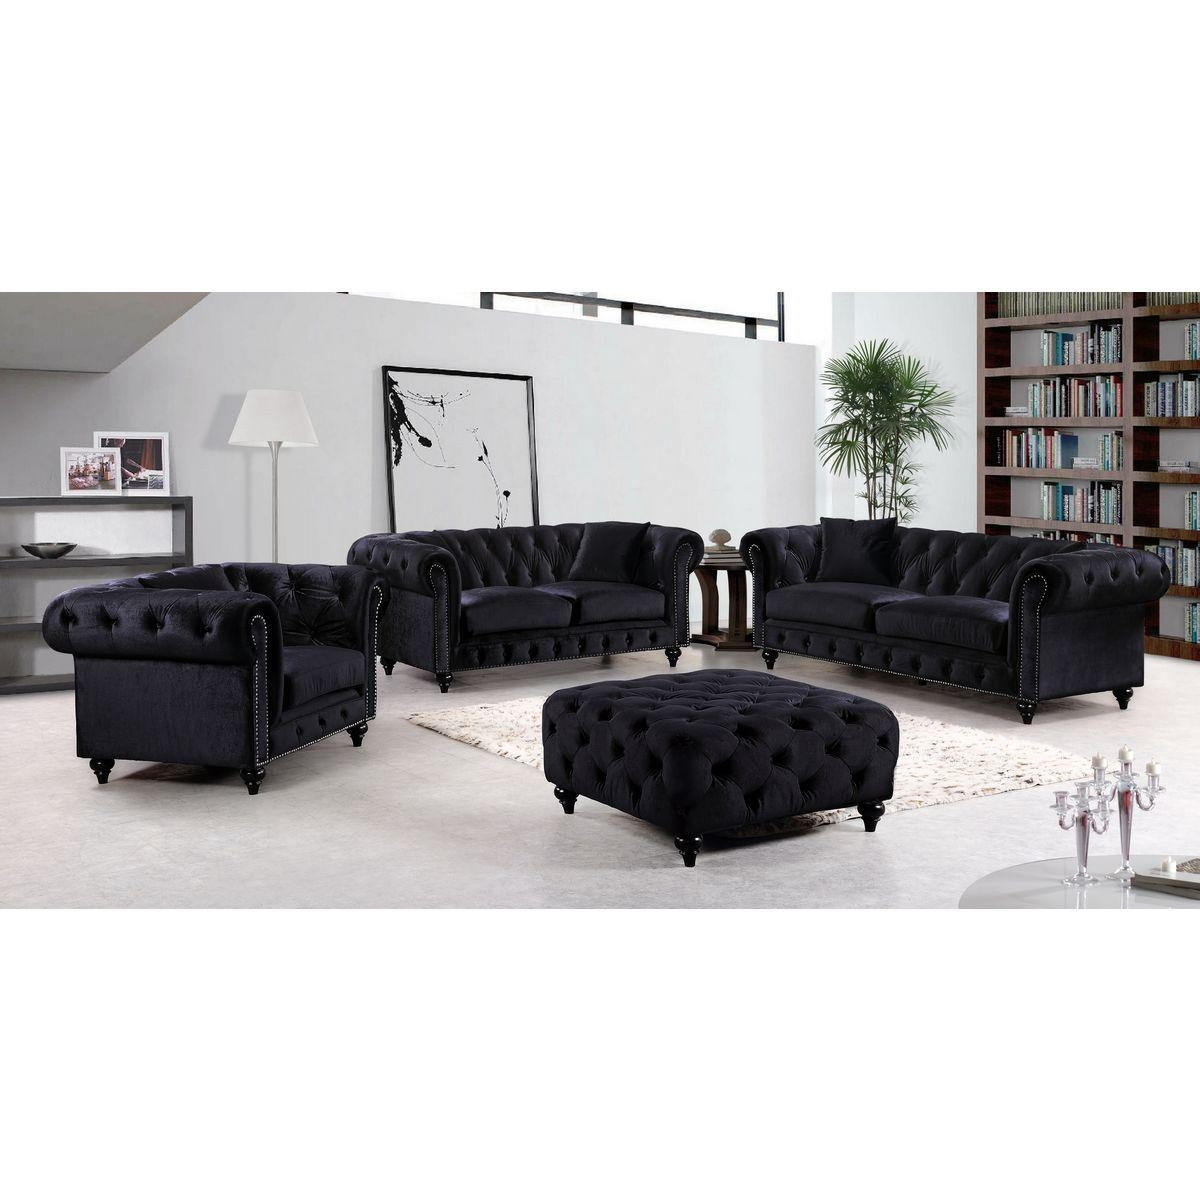 Meridian Furniture 662Bl S Chesterfield Tufted Black Velvet Sofa W Pertaining To Black Velvet Sofas (Image 10 of 20)